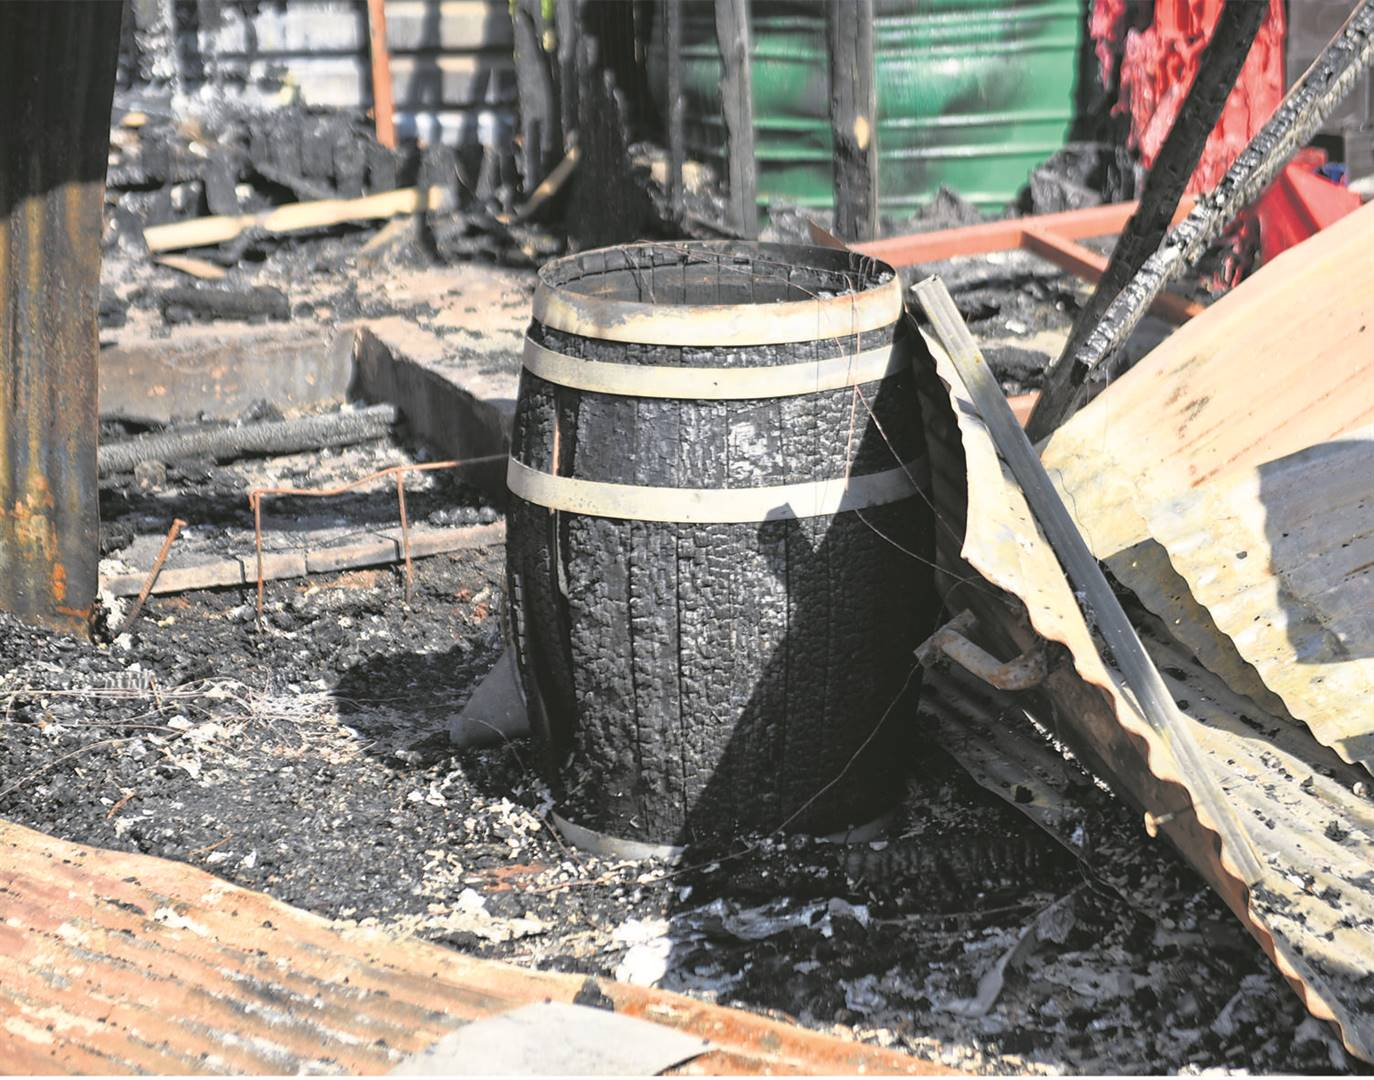 The charred ruins of the Pot and Barrel pub at the Rotunda Centre in Hilton.